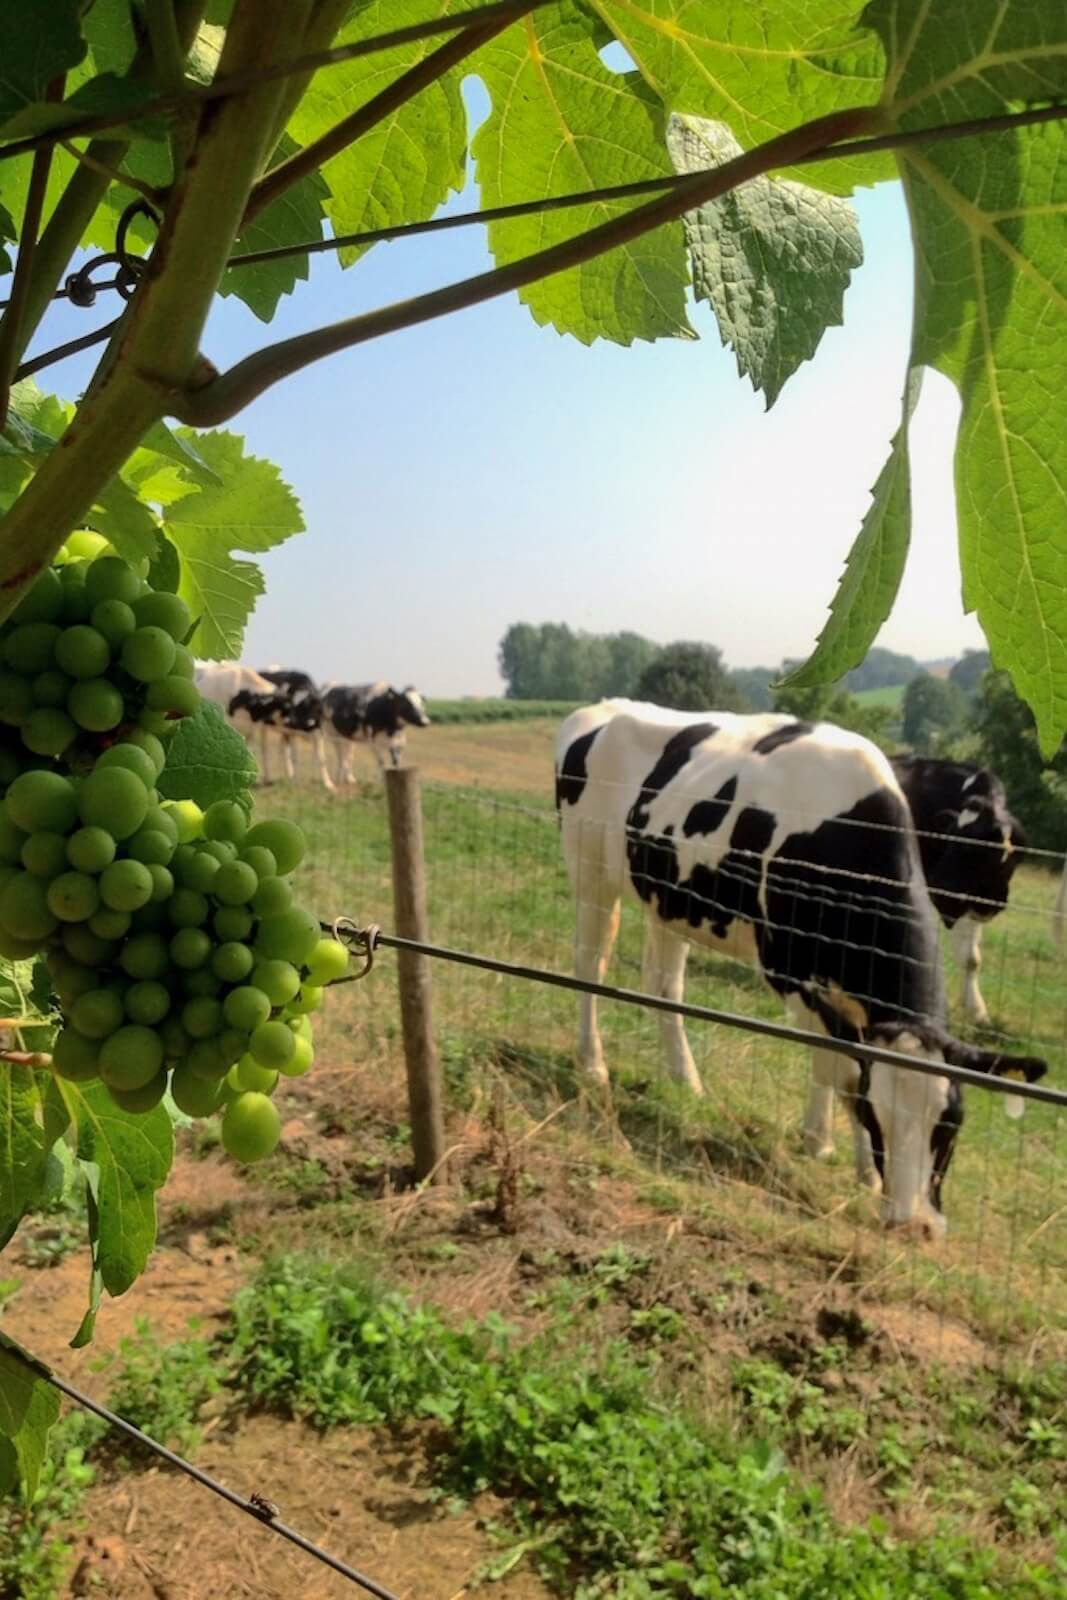 Cows and grapes at Domein De Wijngaardsberg